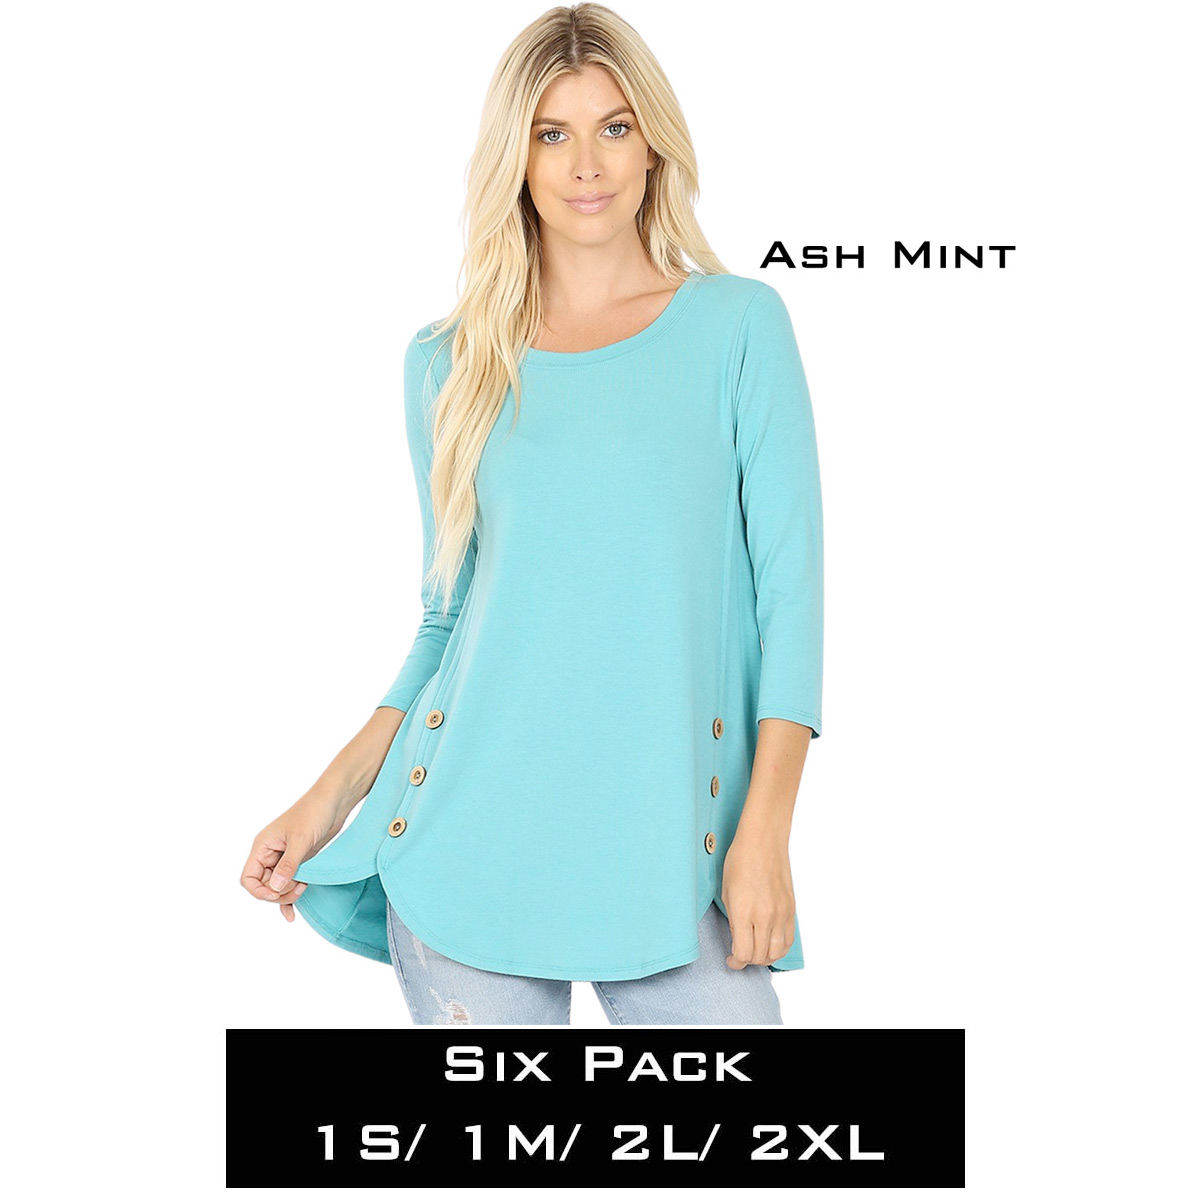 ASH MINT (SIX PACK) 3/4 Sleeve Side Wood Buttons Top 2032(1S,1M,2L,2XL)